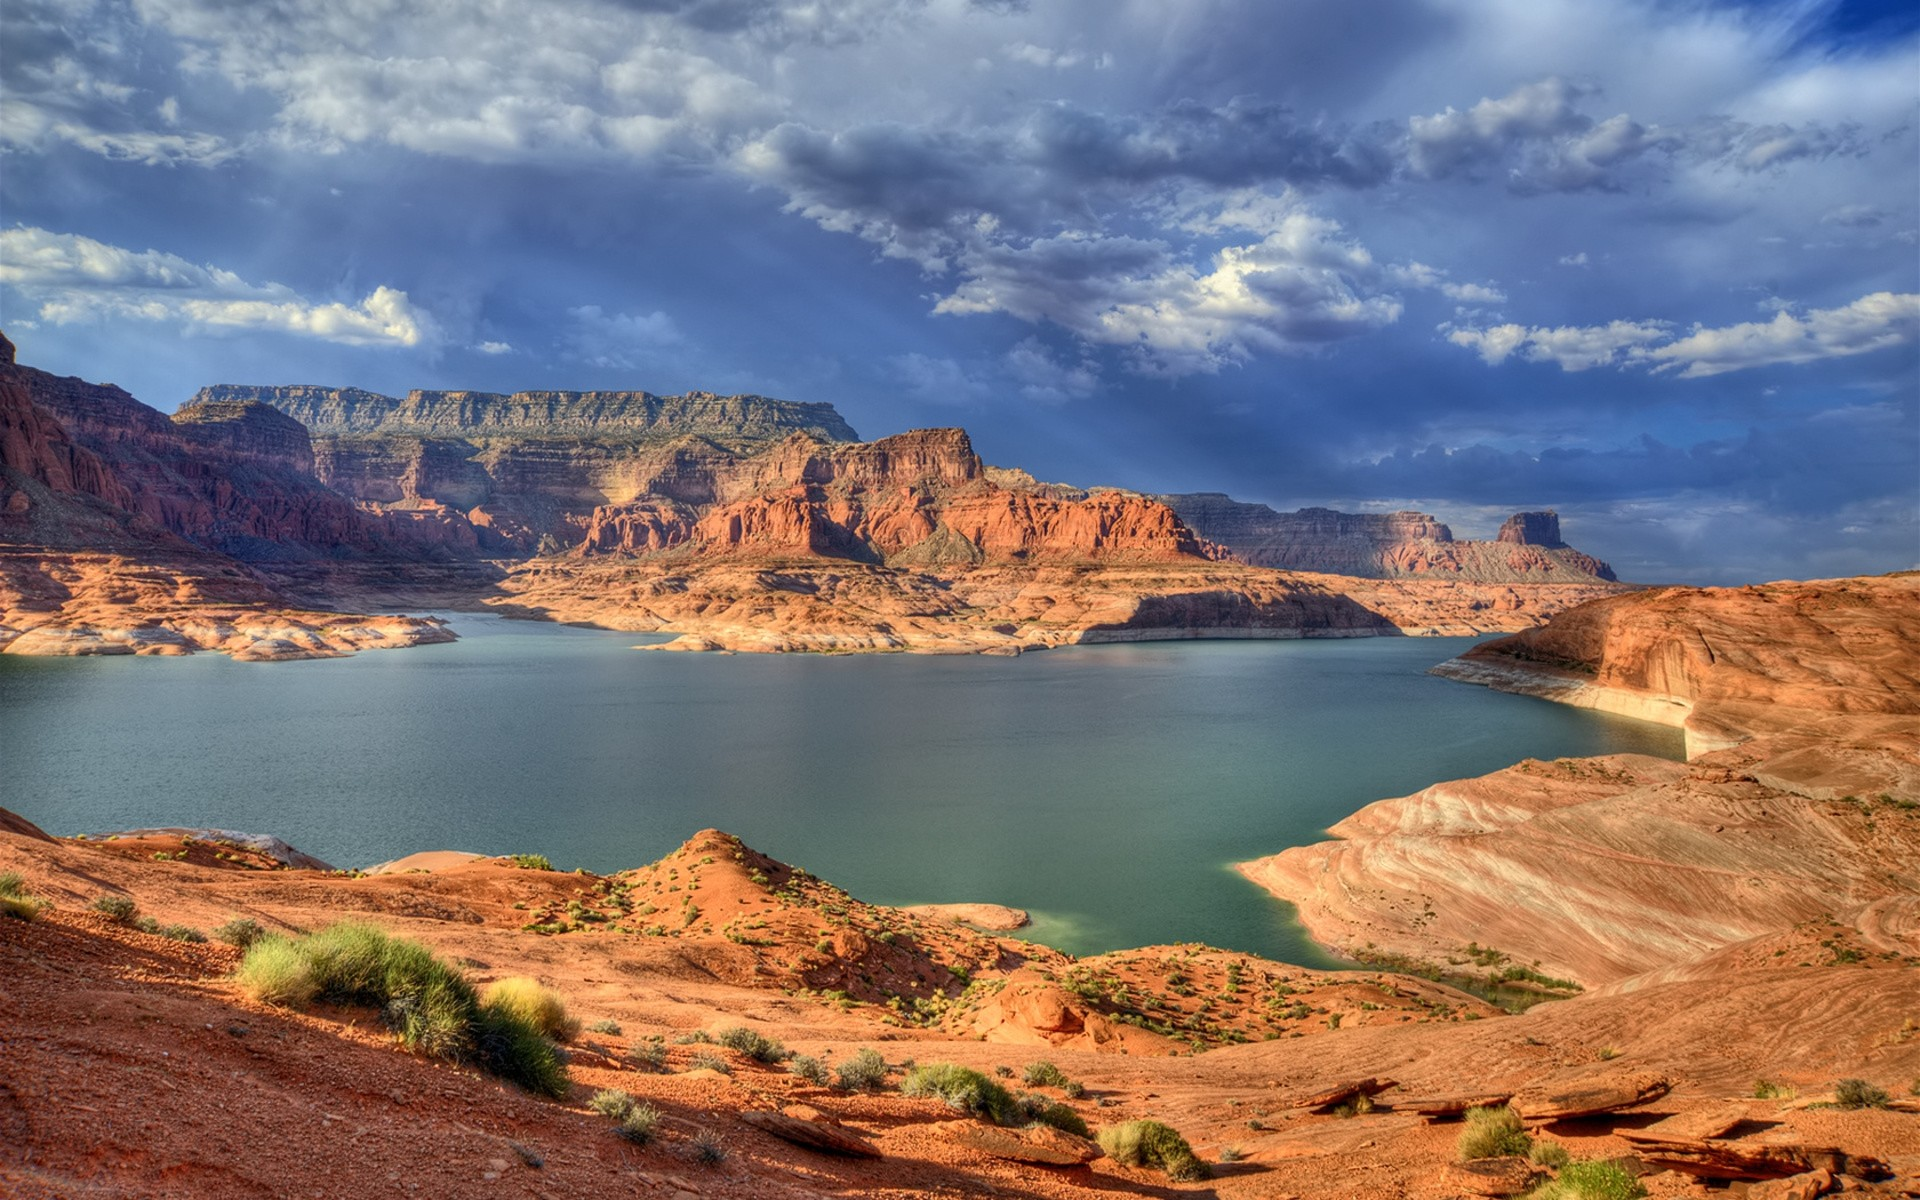 Wallpaper Canyons, Lake, Bushes, Mountains, Clouds, Sky, Gray, Cloudy,  Light HD, Picture, Image